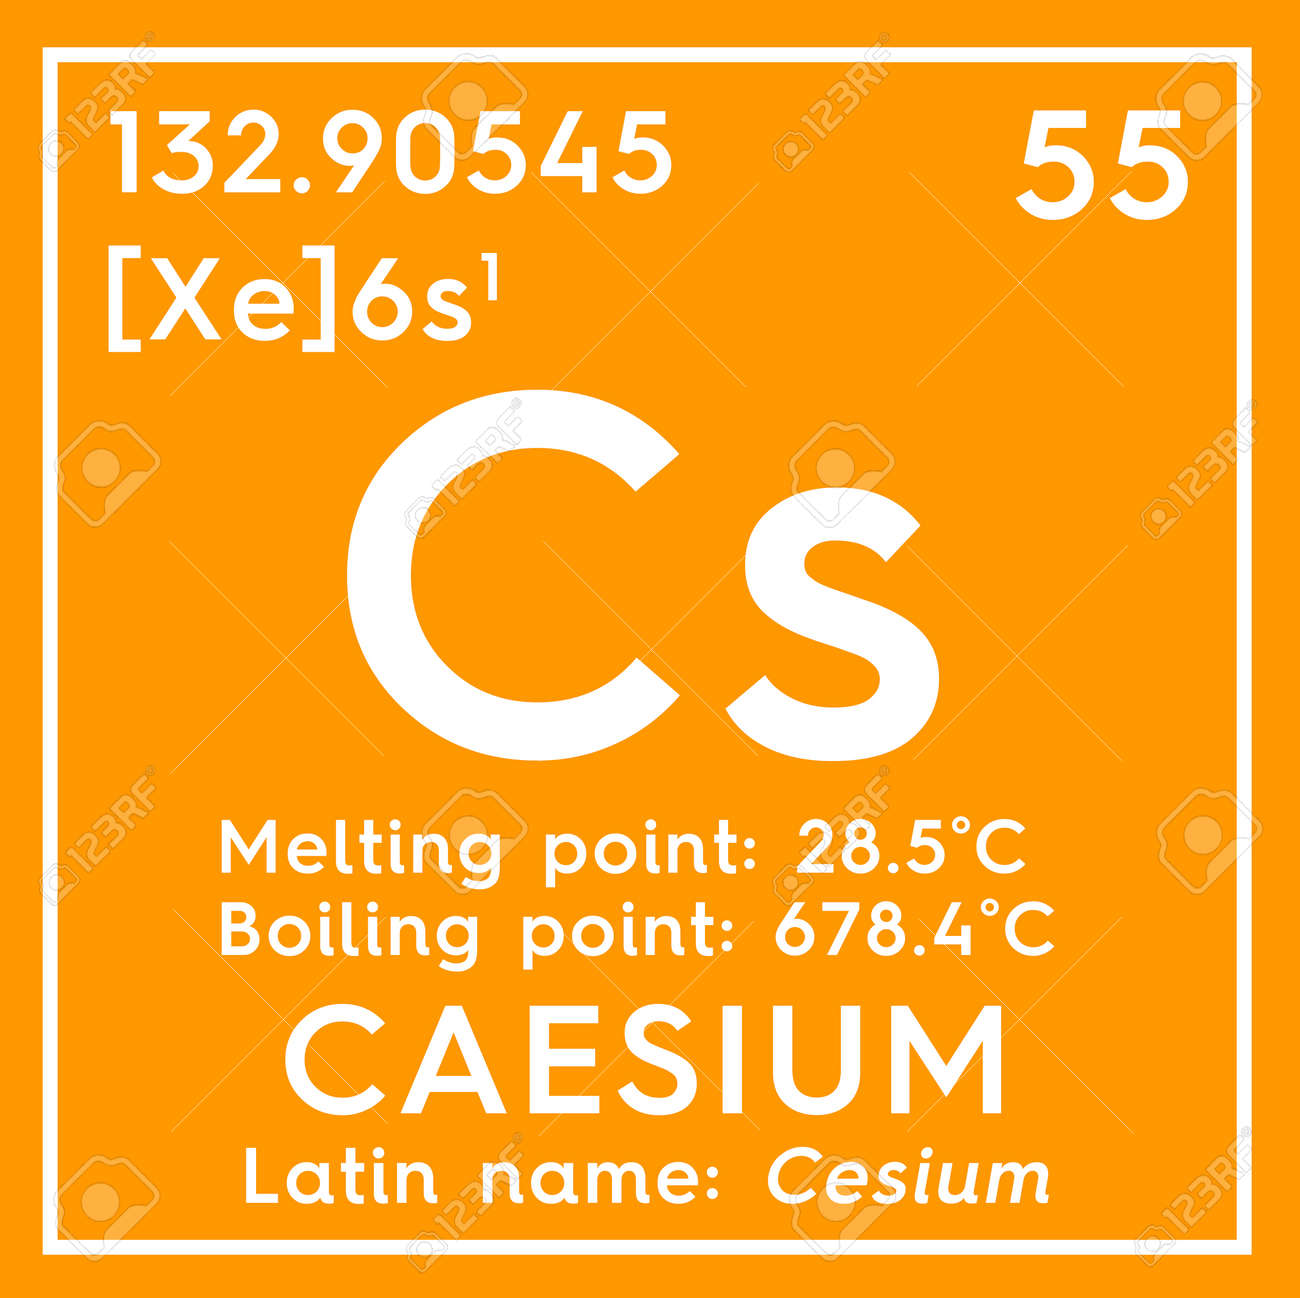 Caesium cesium alkali metals chemical element of mendeleevs caesium cesium alkali metals chemical element of mendeleevs periodic table cesium in buycottarizona